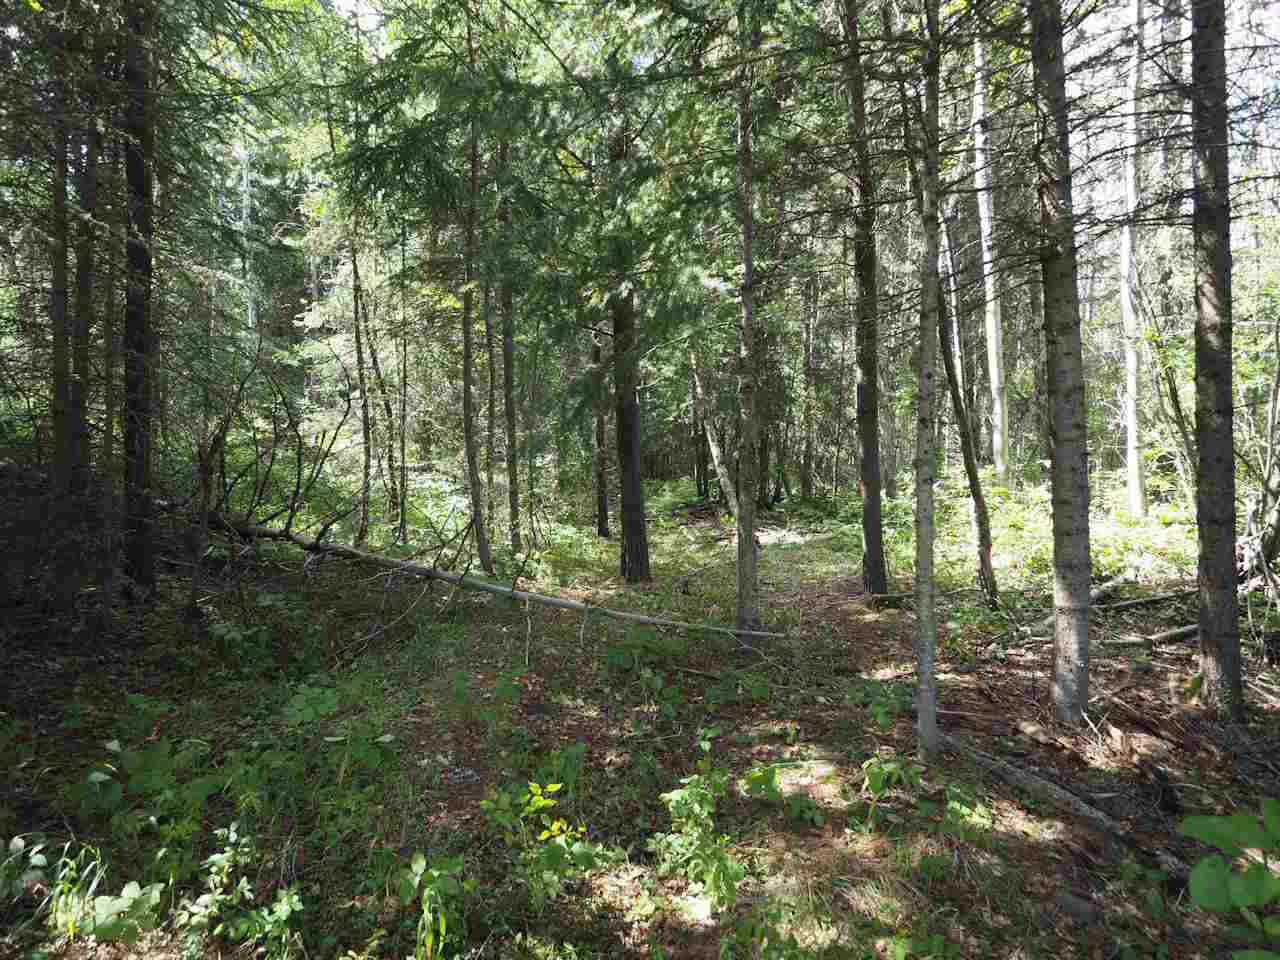 Main Photo: 3450 TIMOTHY HIGHLAND Road: Lac la Hache Land for sale (100 Mile House (Zone 10))  : MLS®# R2484918